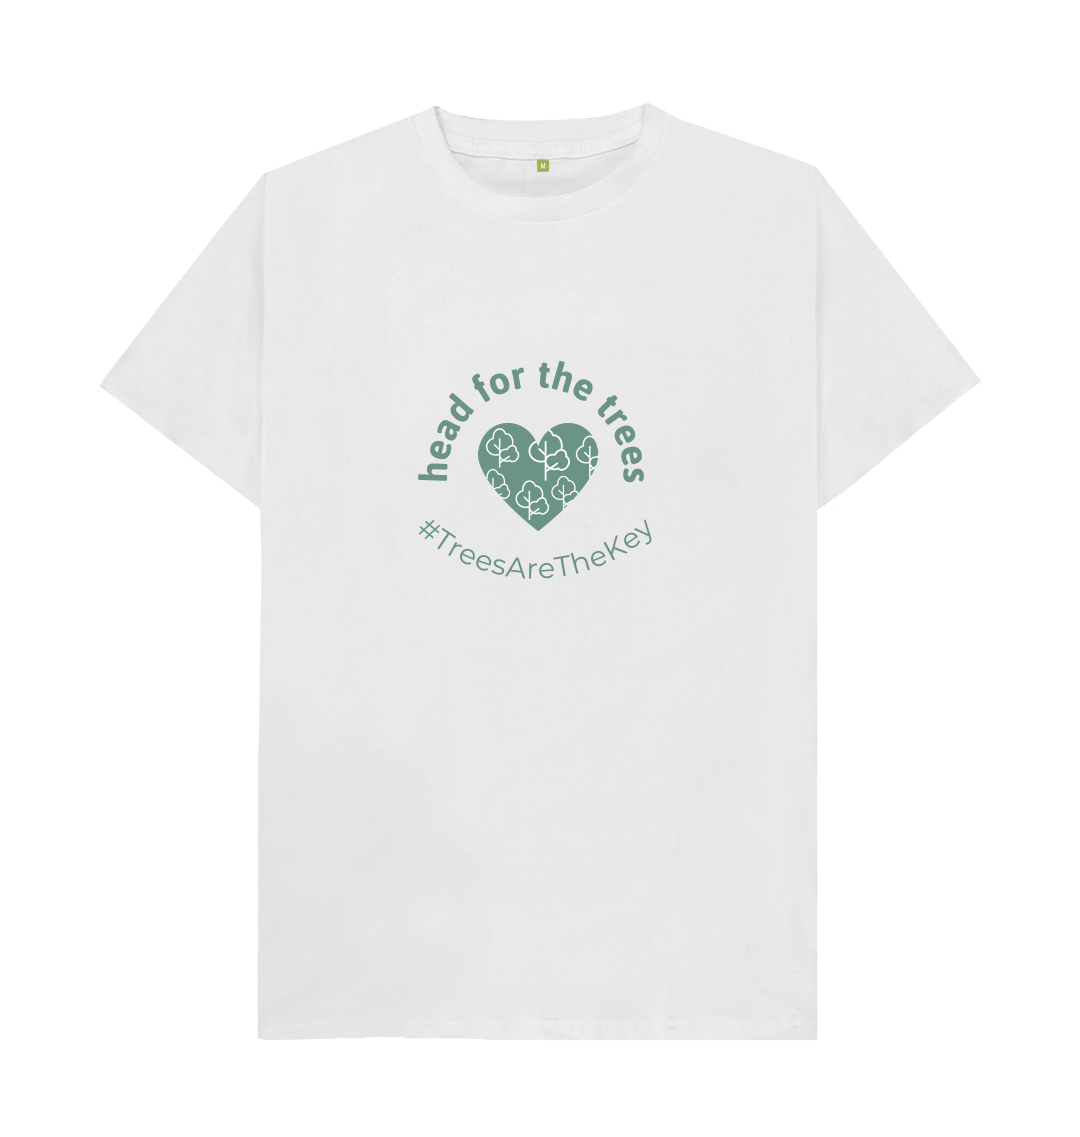 Head for the Trees Tees